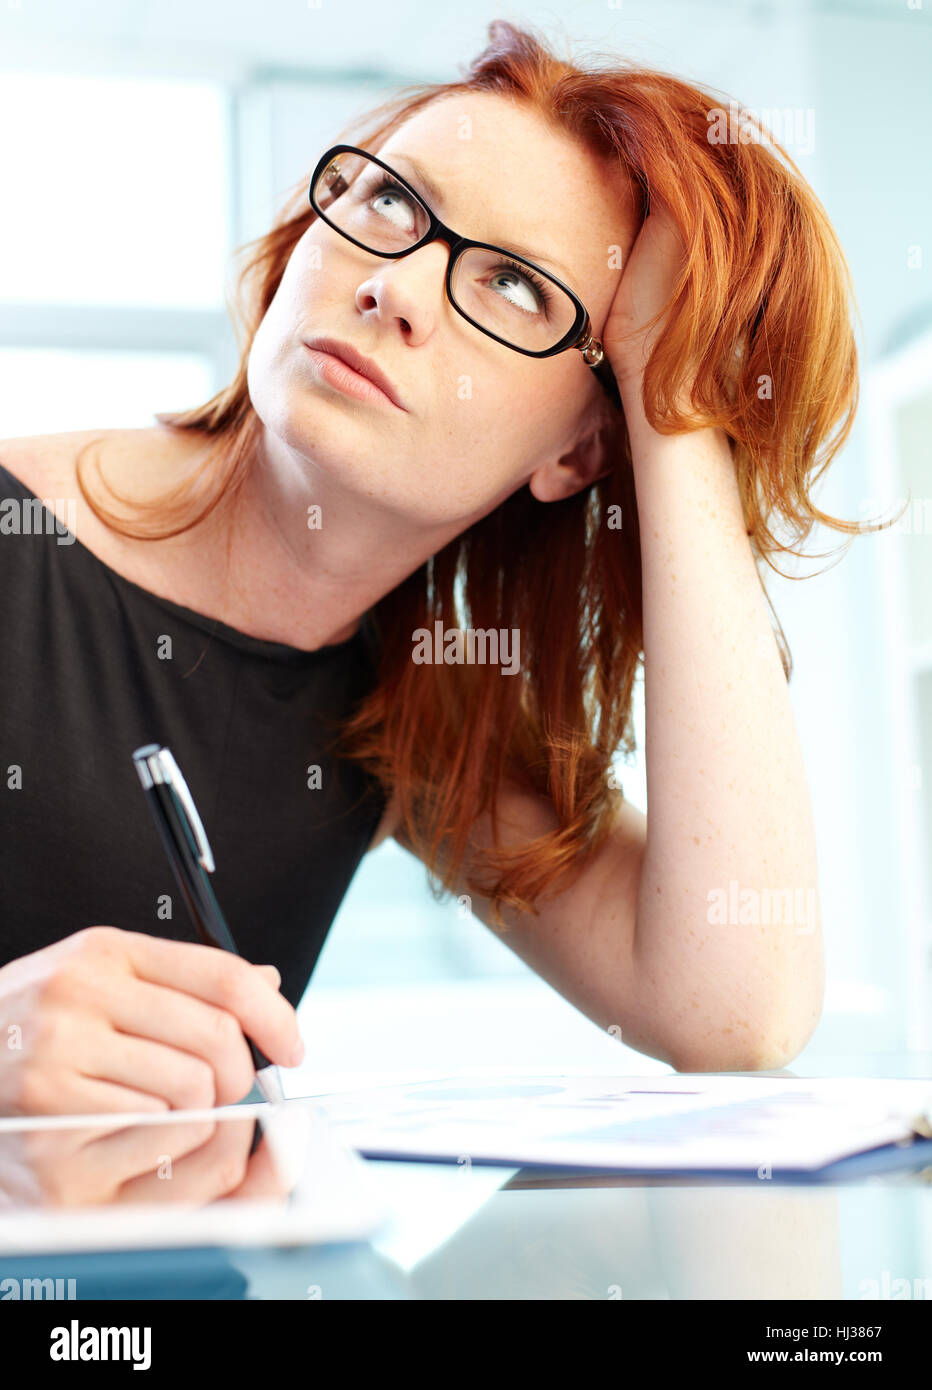 woman, humans, human beings, people, folk, persons, human, human being, write, Stock Photo